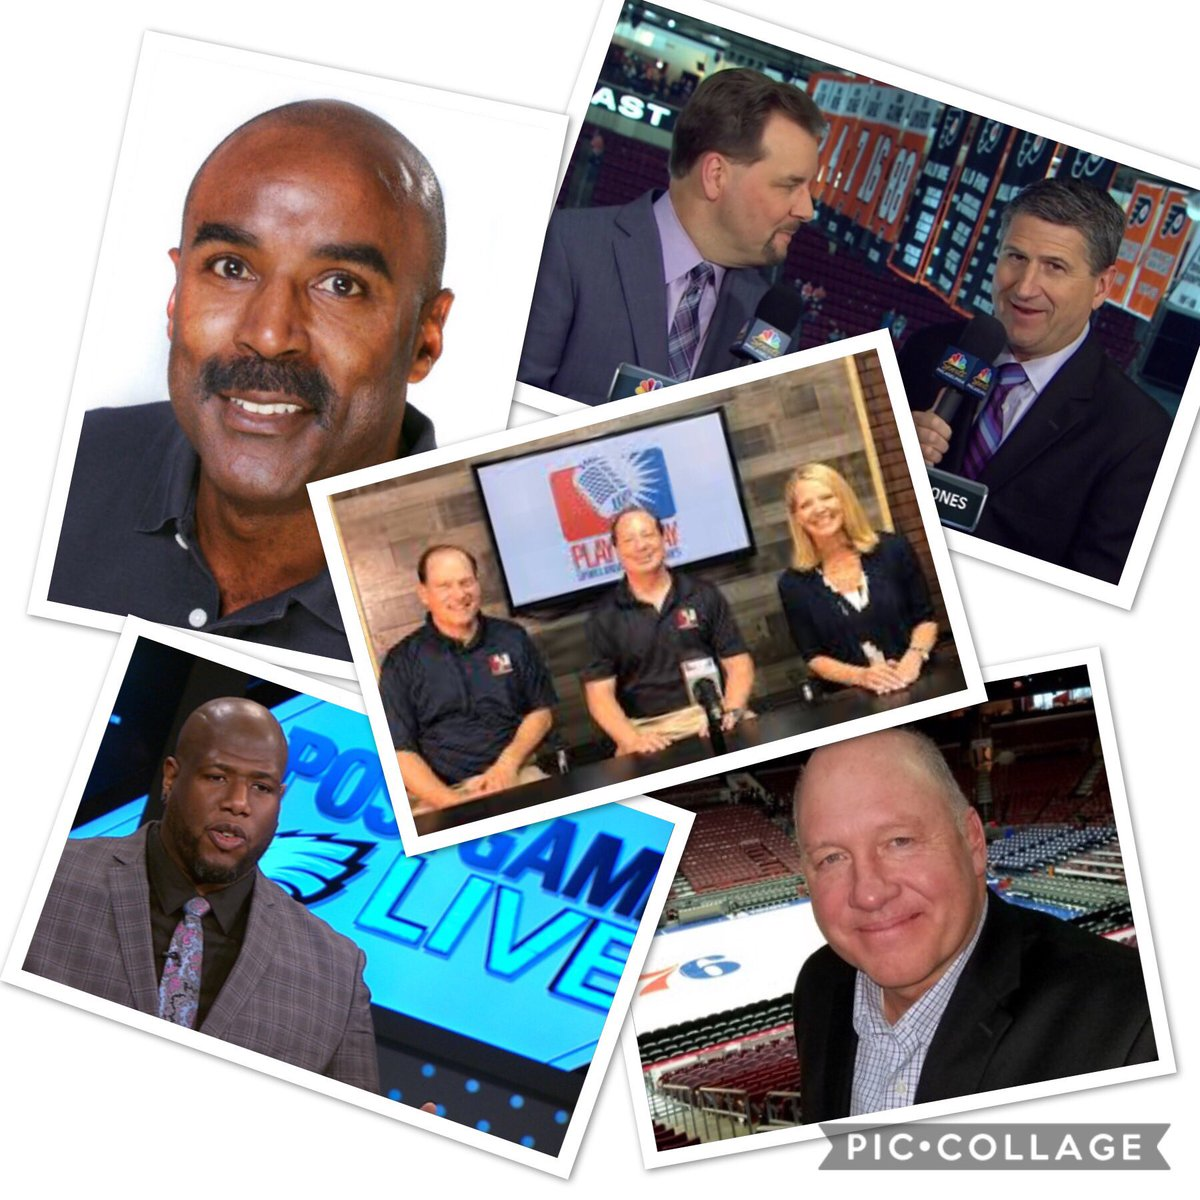 Great lineup of guests next week for our sports broadcasting camp in Cherry Hill, NJ and more to come! Spots still available, ages 10-18 playbyplaycamps.com Among the guests: Flyers Analyst Keith Jones @JimJPhilly @MikeQuickSix @bbrooks72NBCS @McGinnisThomas @lesliegudel